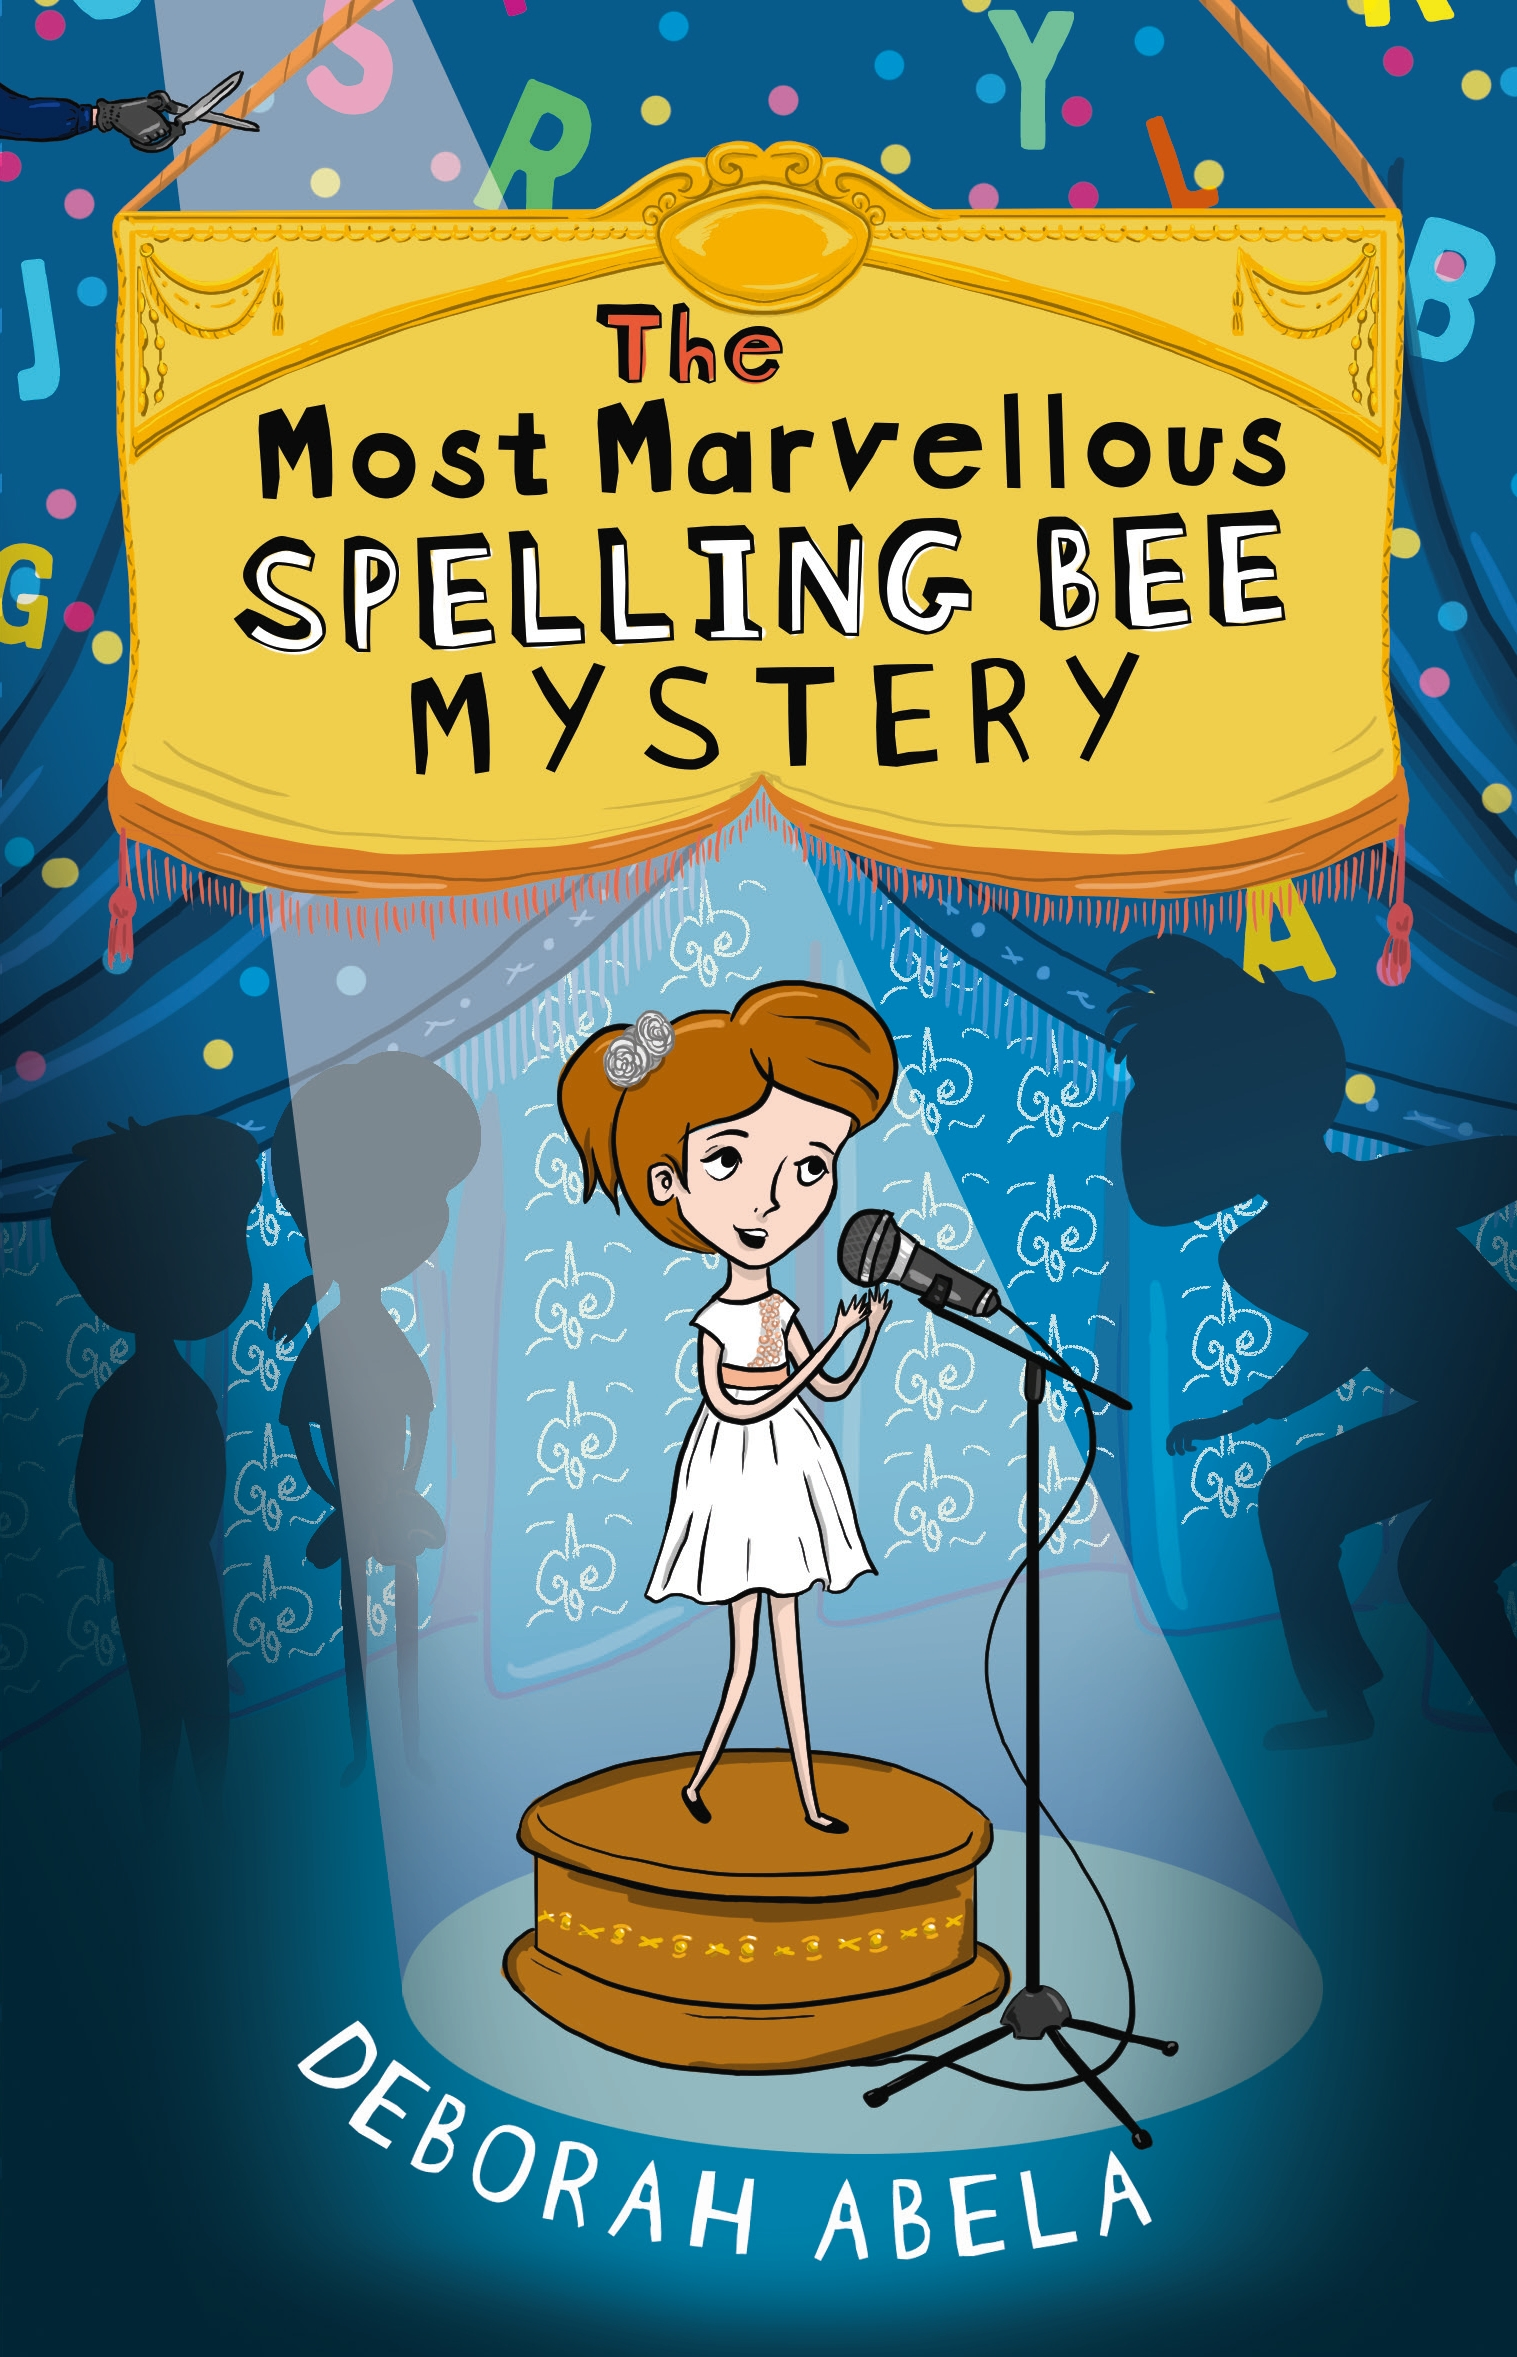 The Most Marvellous Spelling Bee Mysteryby Deborah Abela